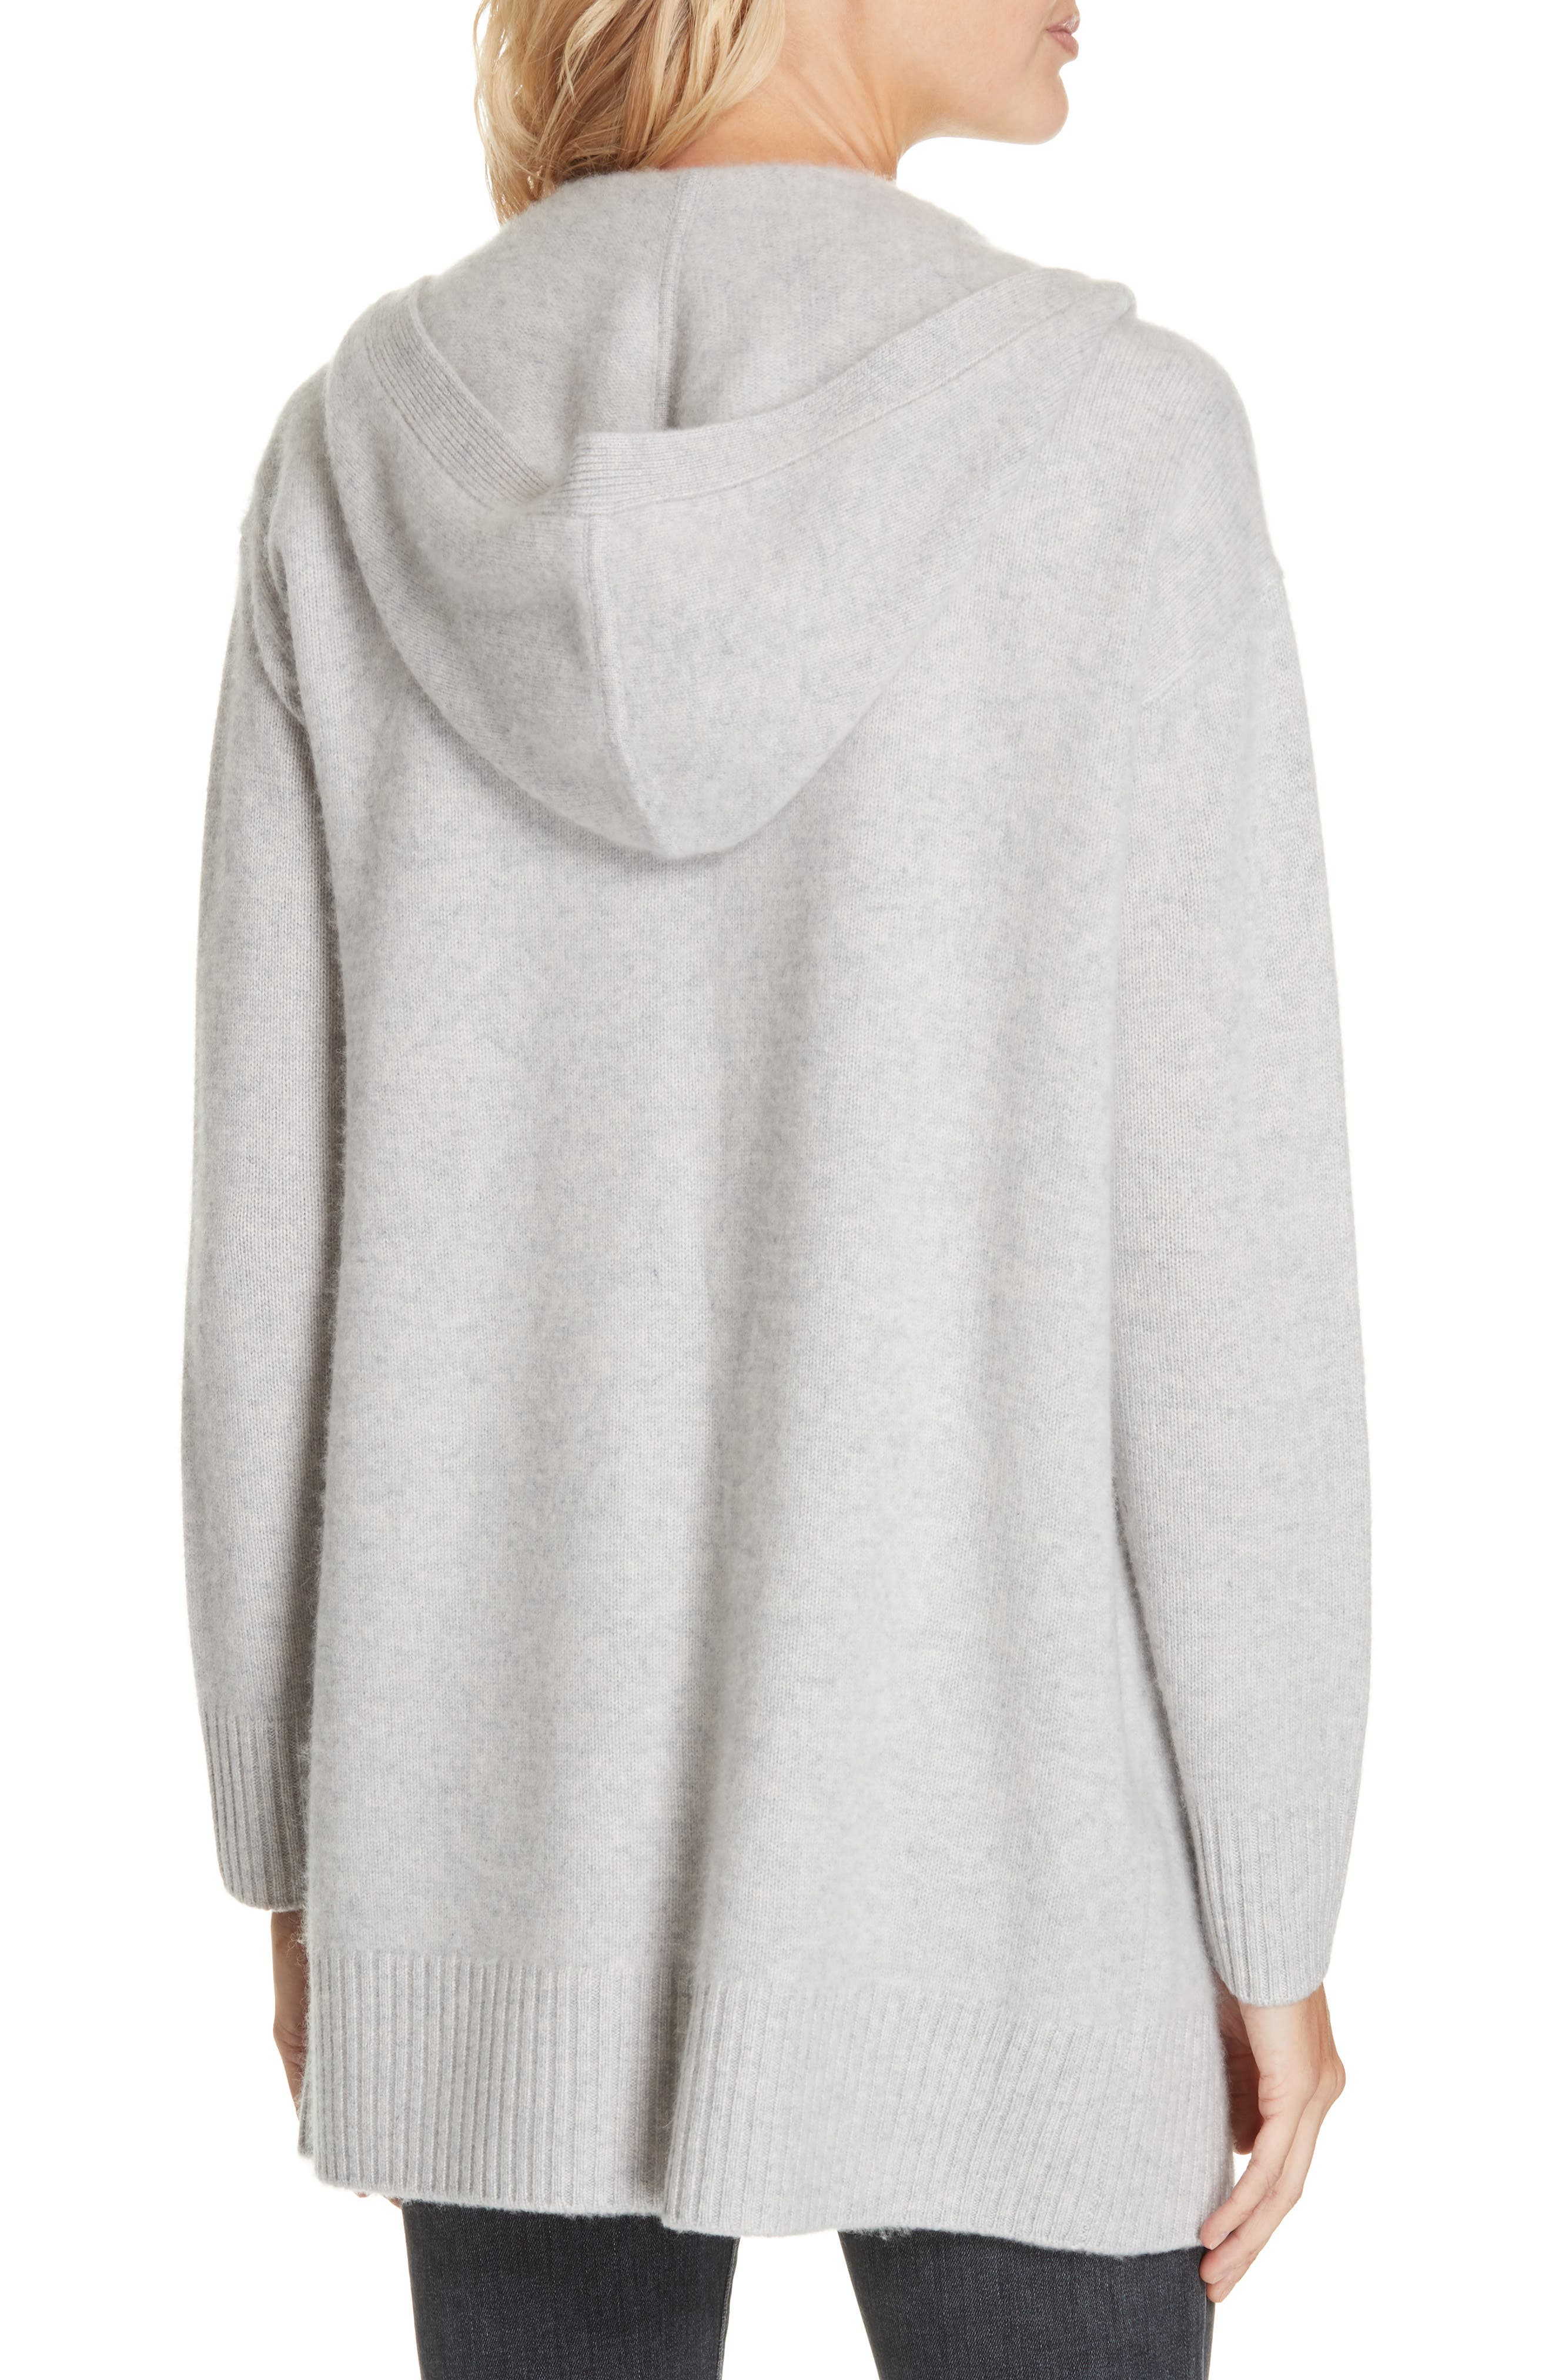 NORDSTROM SIGNATURE, Hooded Boiled Cashmere Cardigan, Alternate thumbnail 2, color, 050